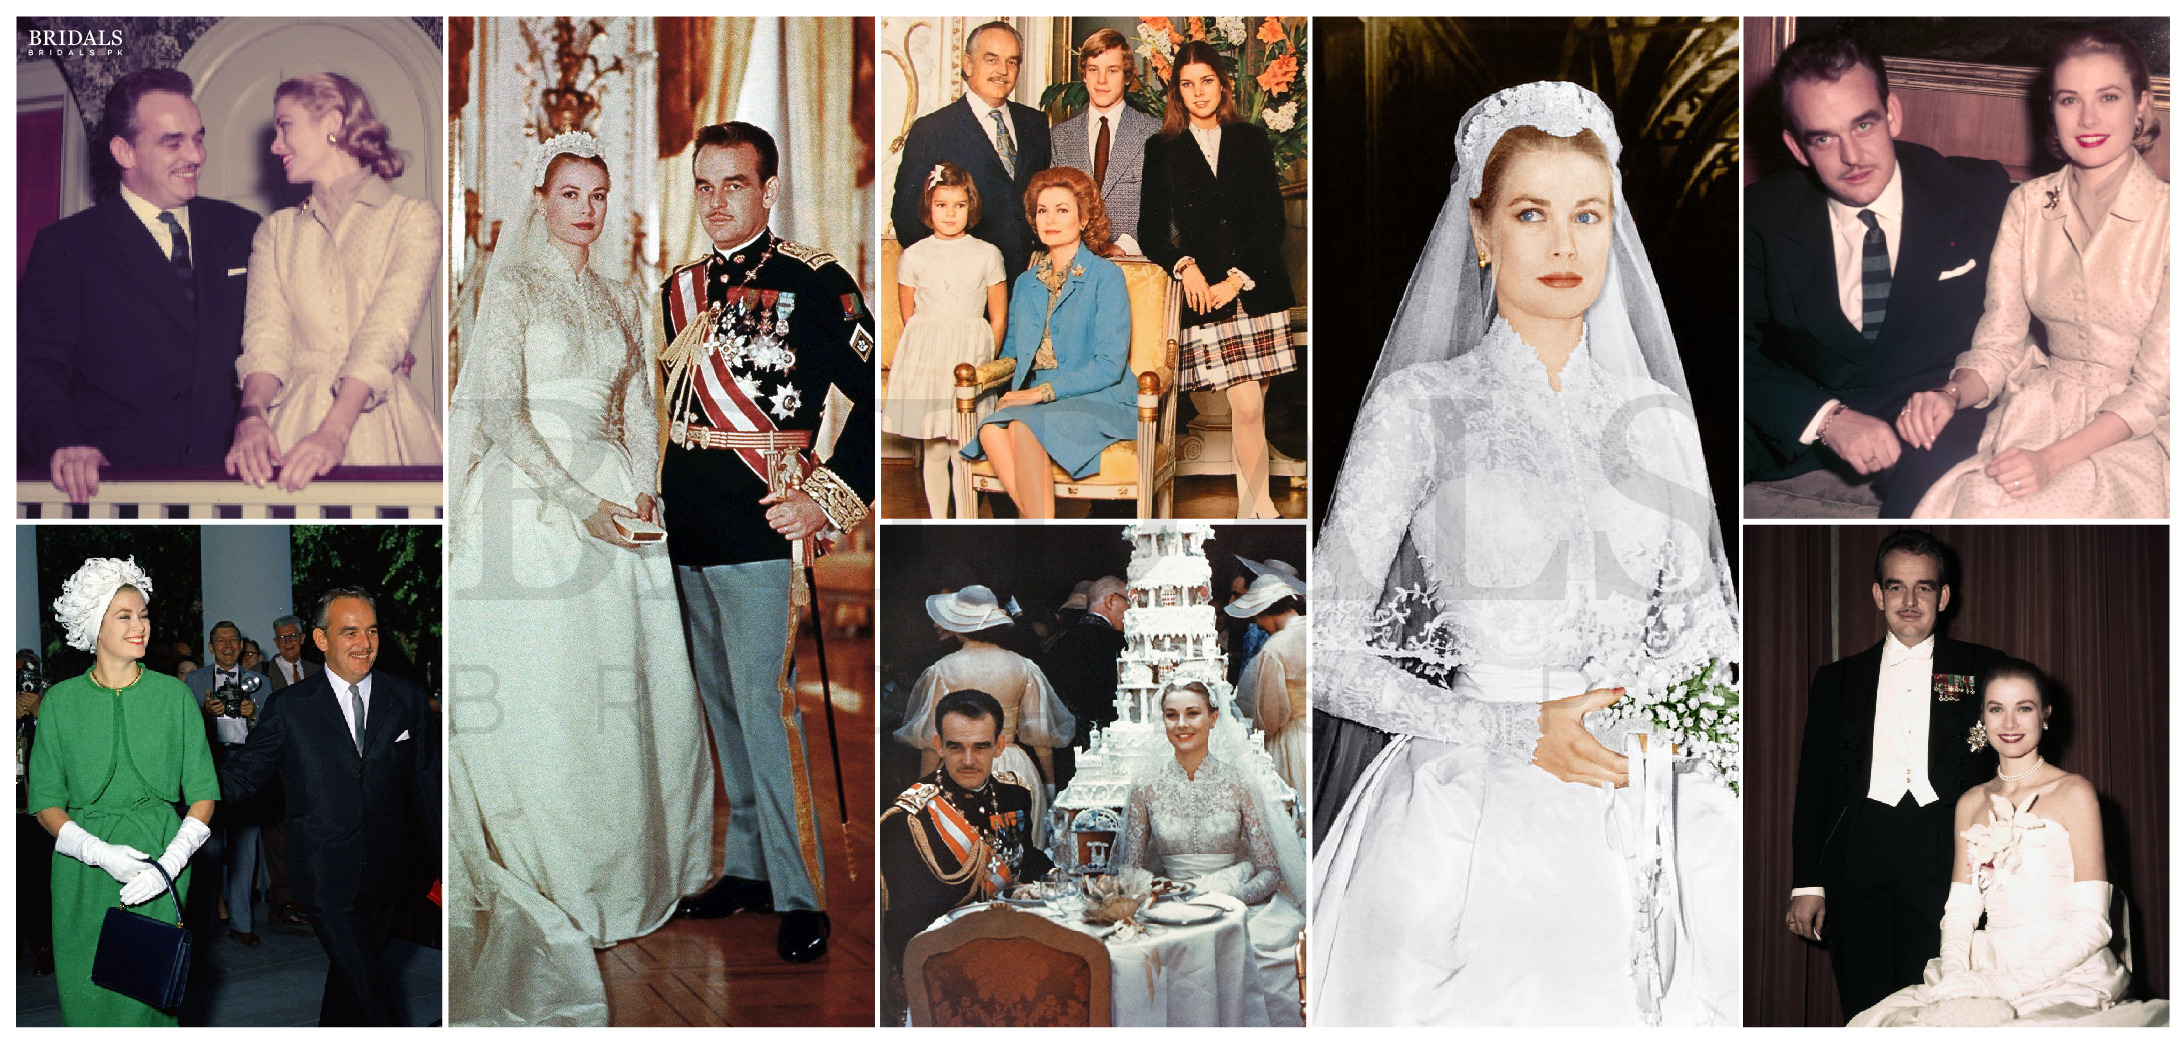 Grace Weds Rainier: The Wedding That Transformed An Actress Into A Princess